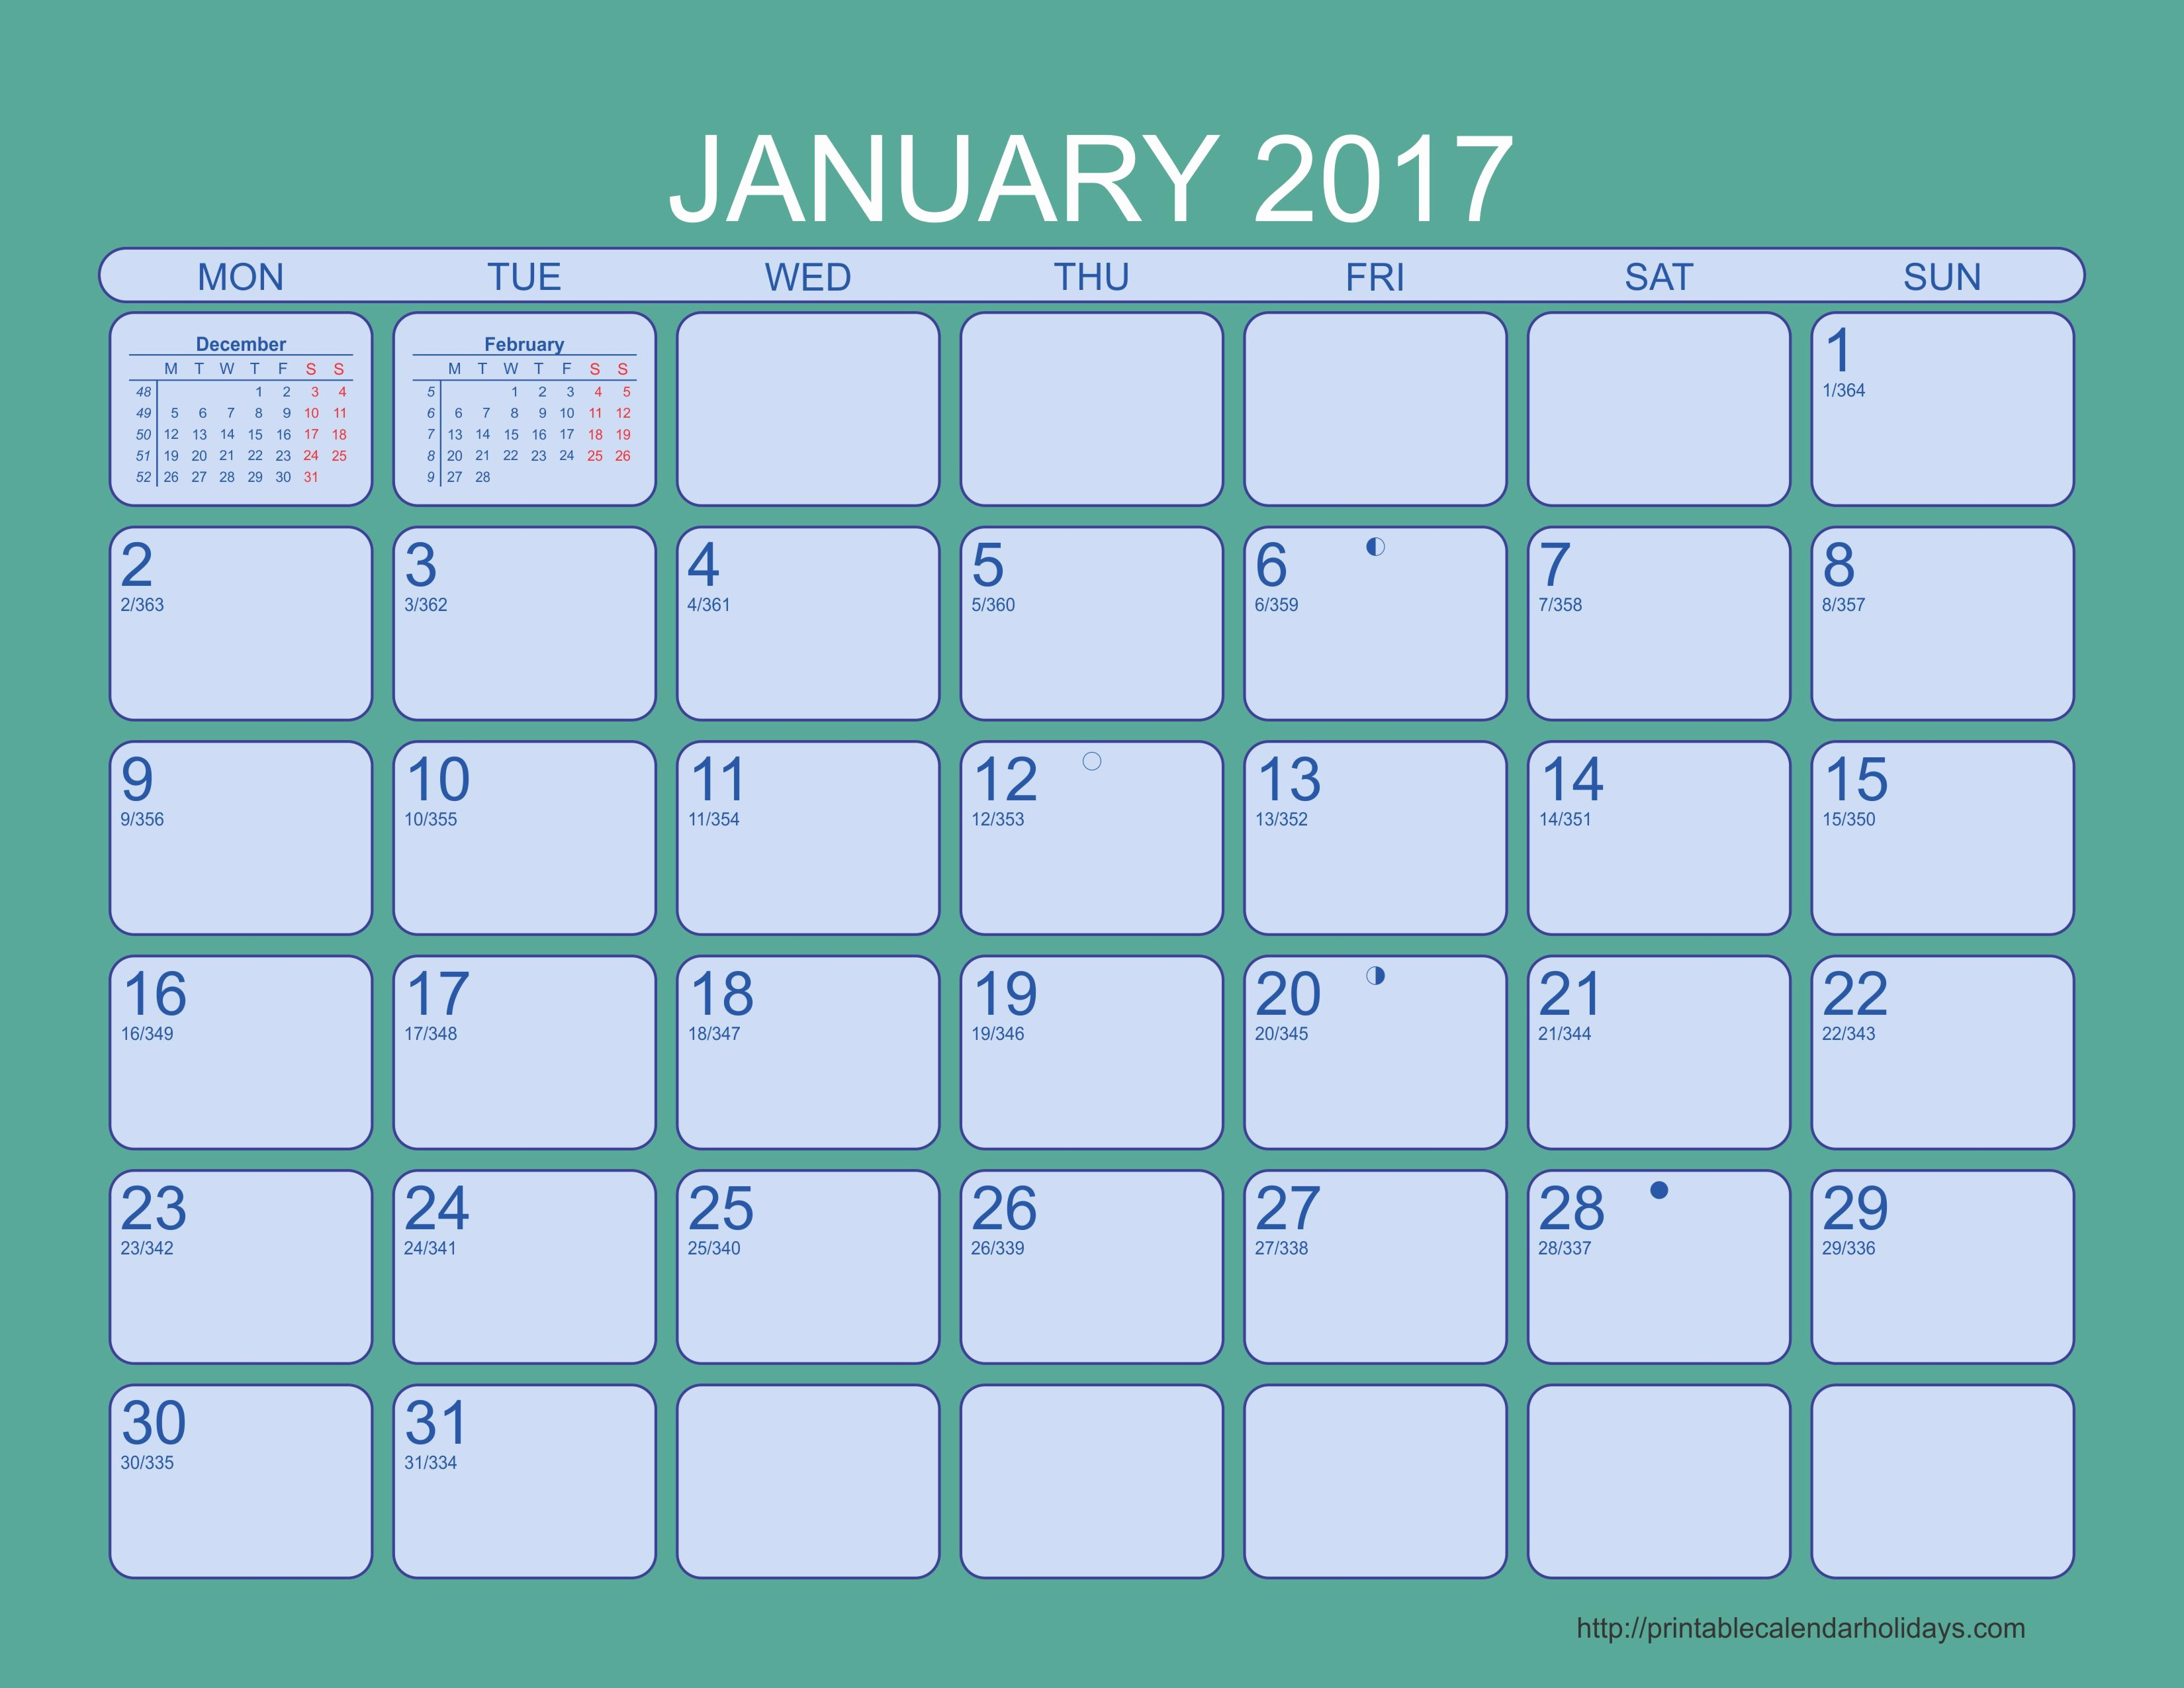 Calendar 2017 Template with Holidays Beautiful Monthly Calendar 2017 Archives Free Printable Calendar